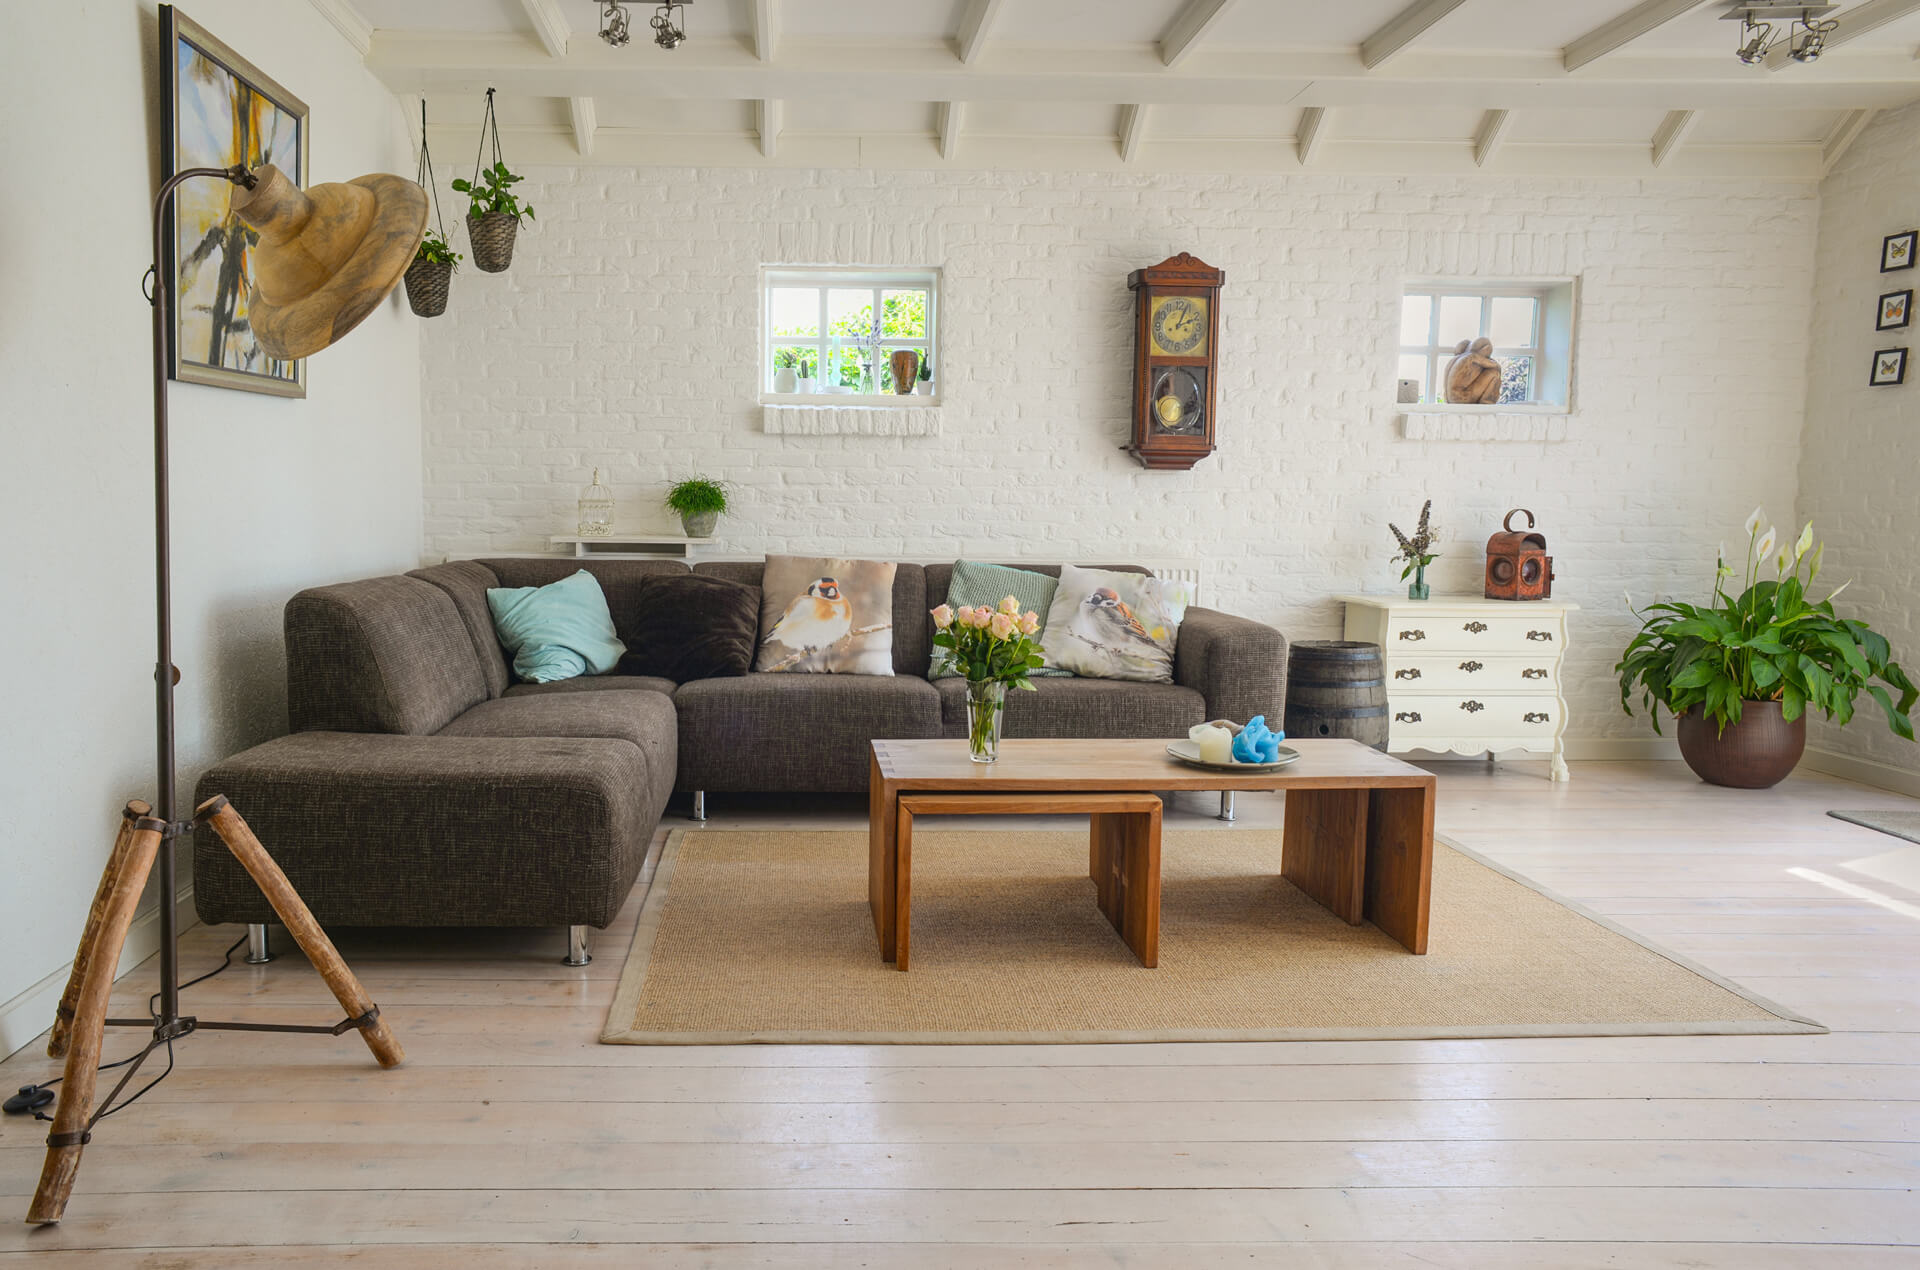 Stage Your Home to Improve Your Selling Chances